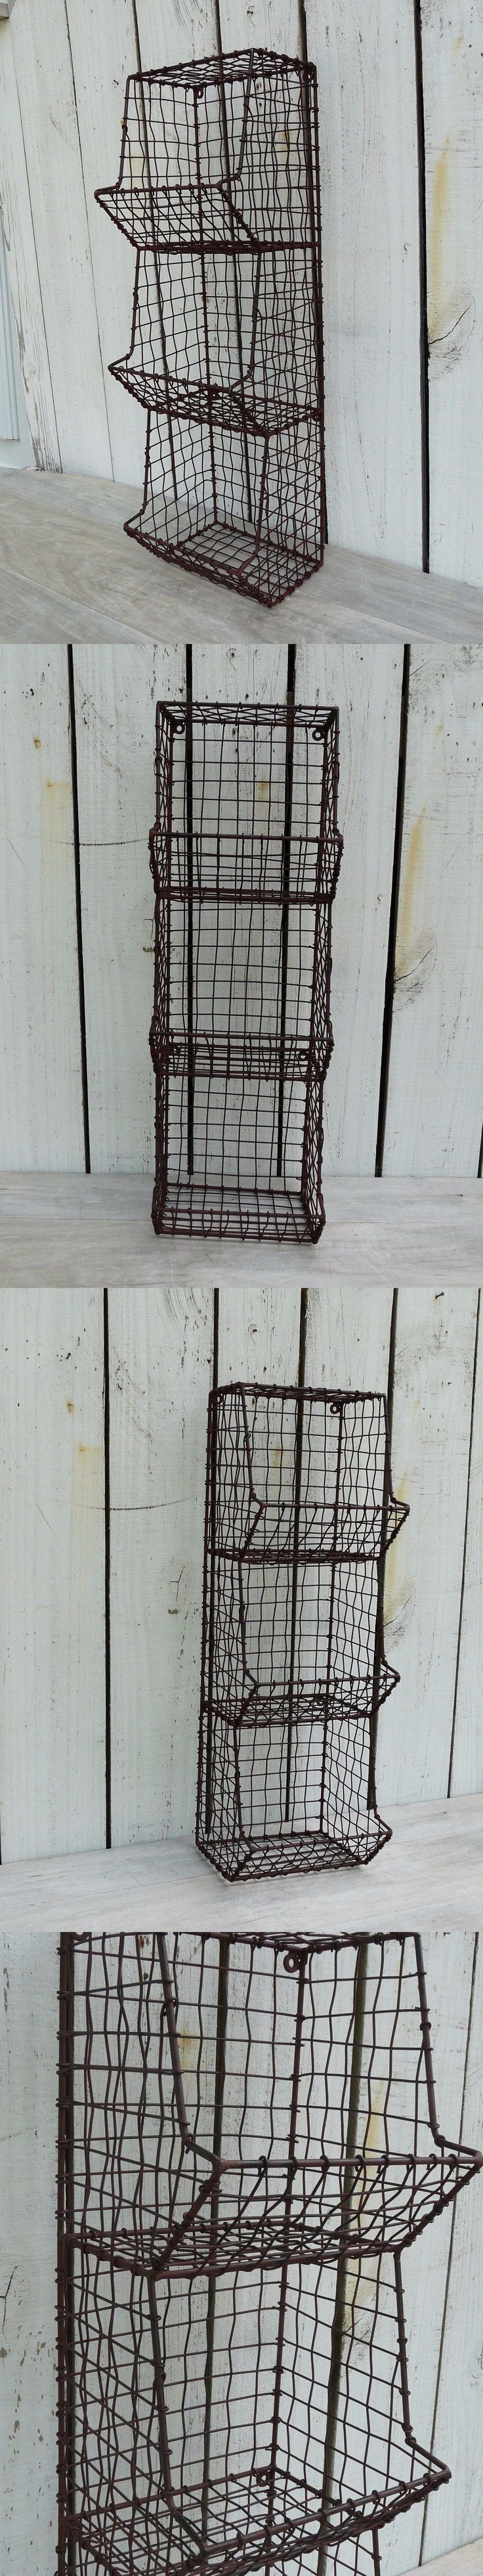 Baskets 125072: General Store Metal Wall Bin Organizer Storage Primitive Country Home Wall Decor -> BUY IT NOW ONLY: $49.95 on eBay!